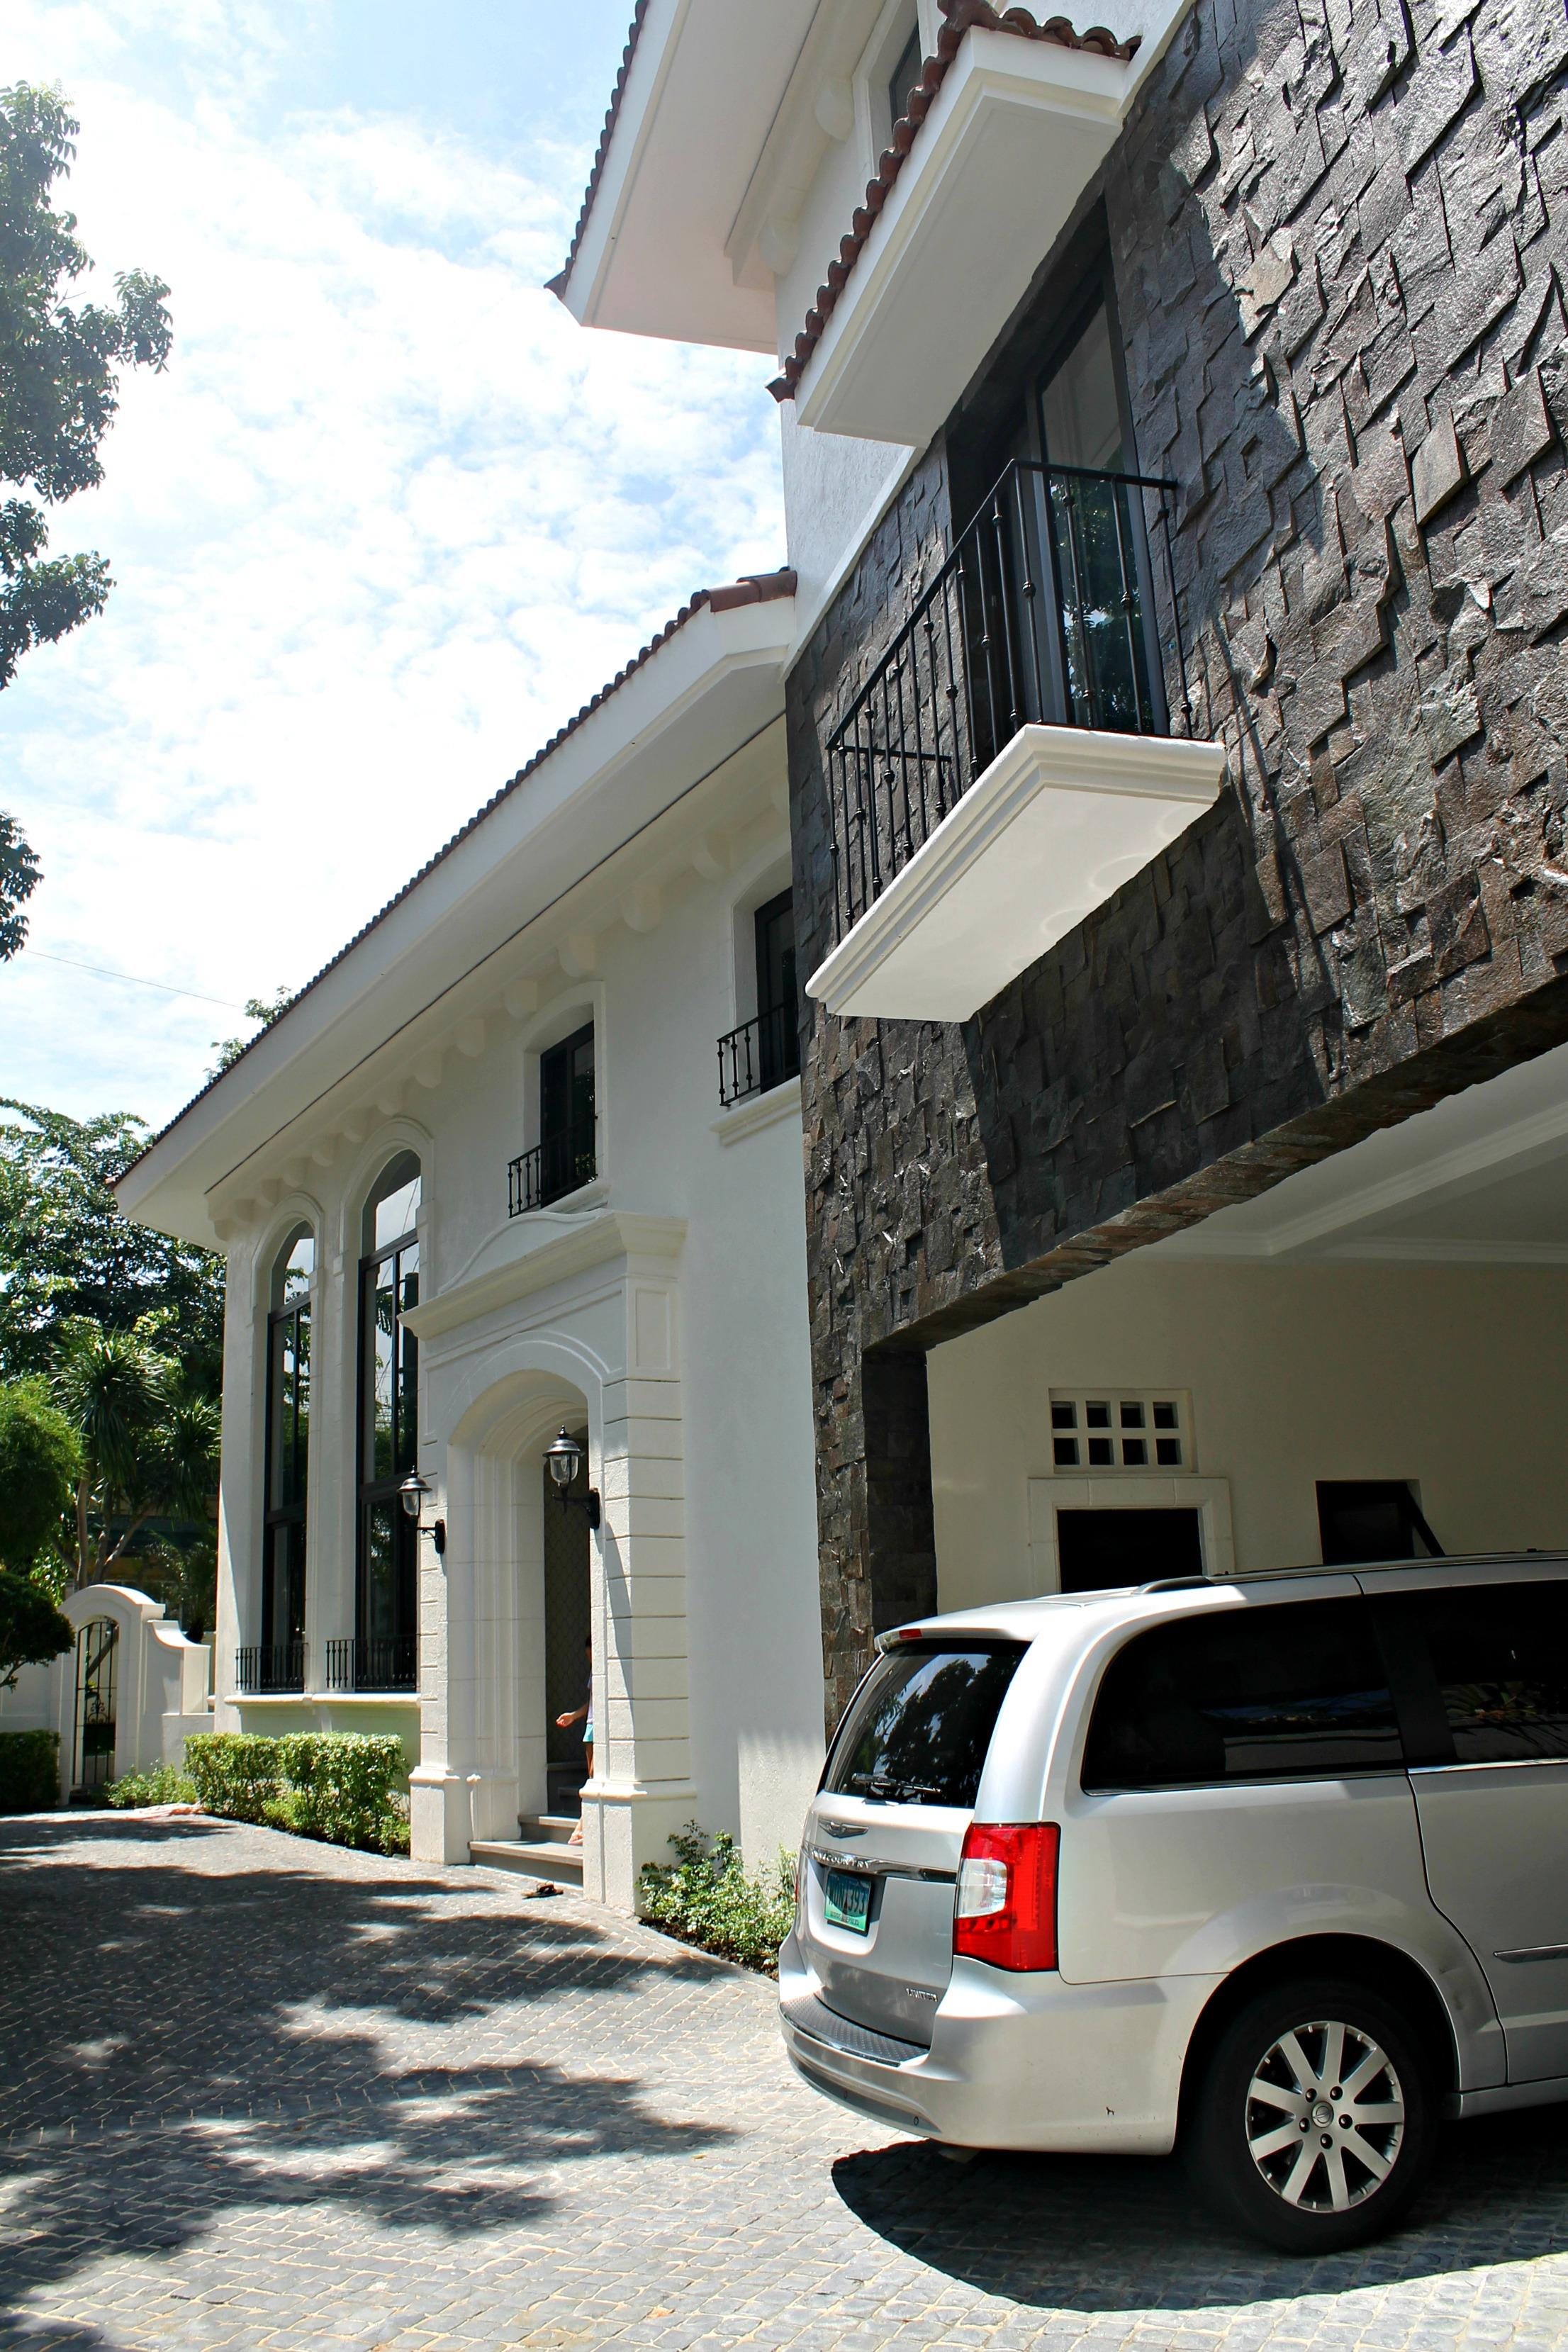 PRICE CALL US AYALA ALABANG HOUSE FOR SALE STYLE Modern Contemporary House FEATURES Narra Parqet Flooring Italian Tiled Ceiling To Floor Glass